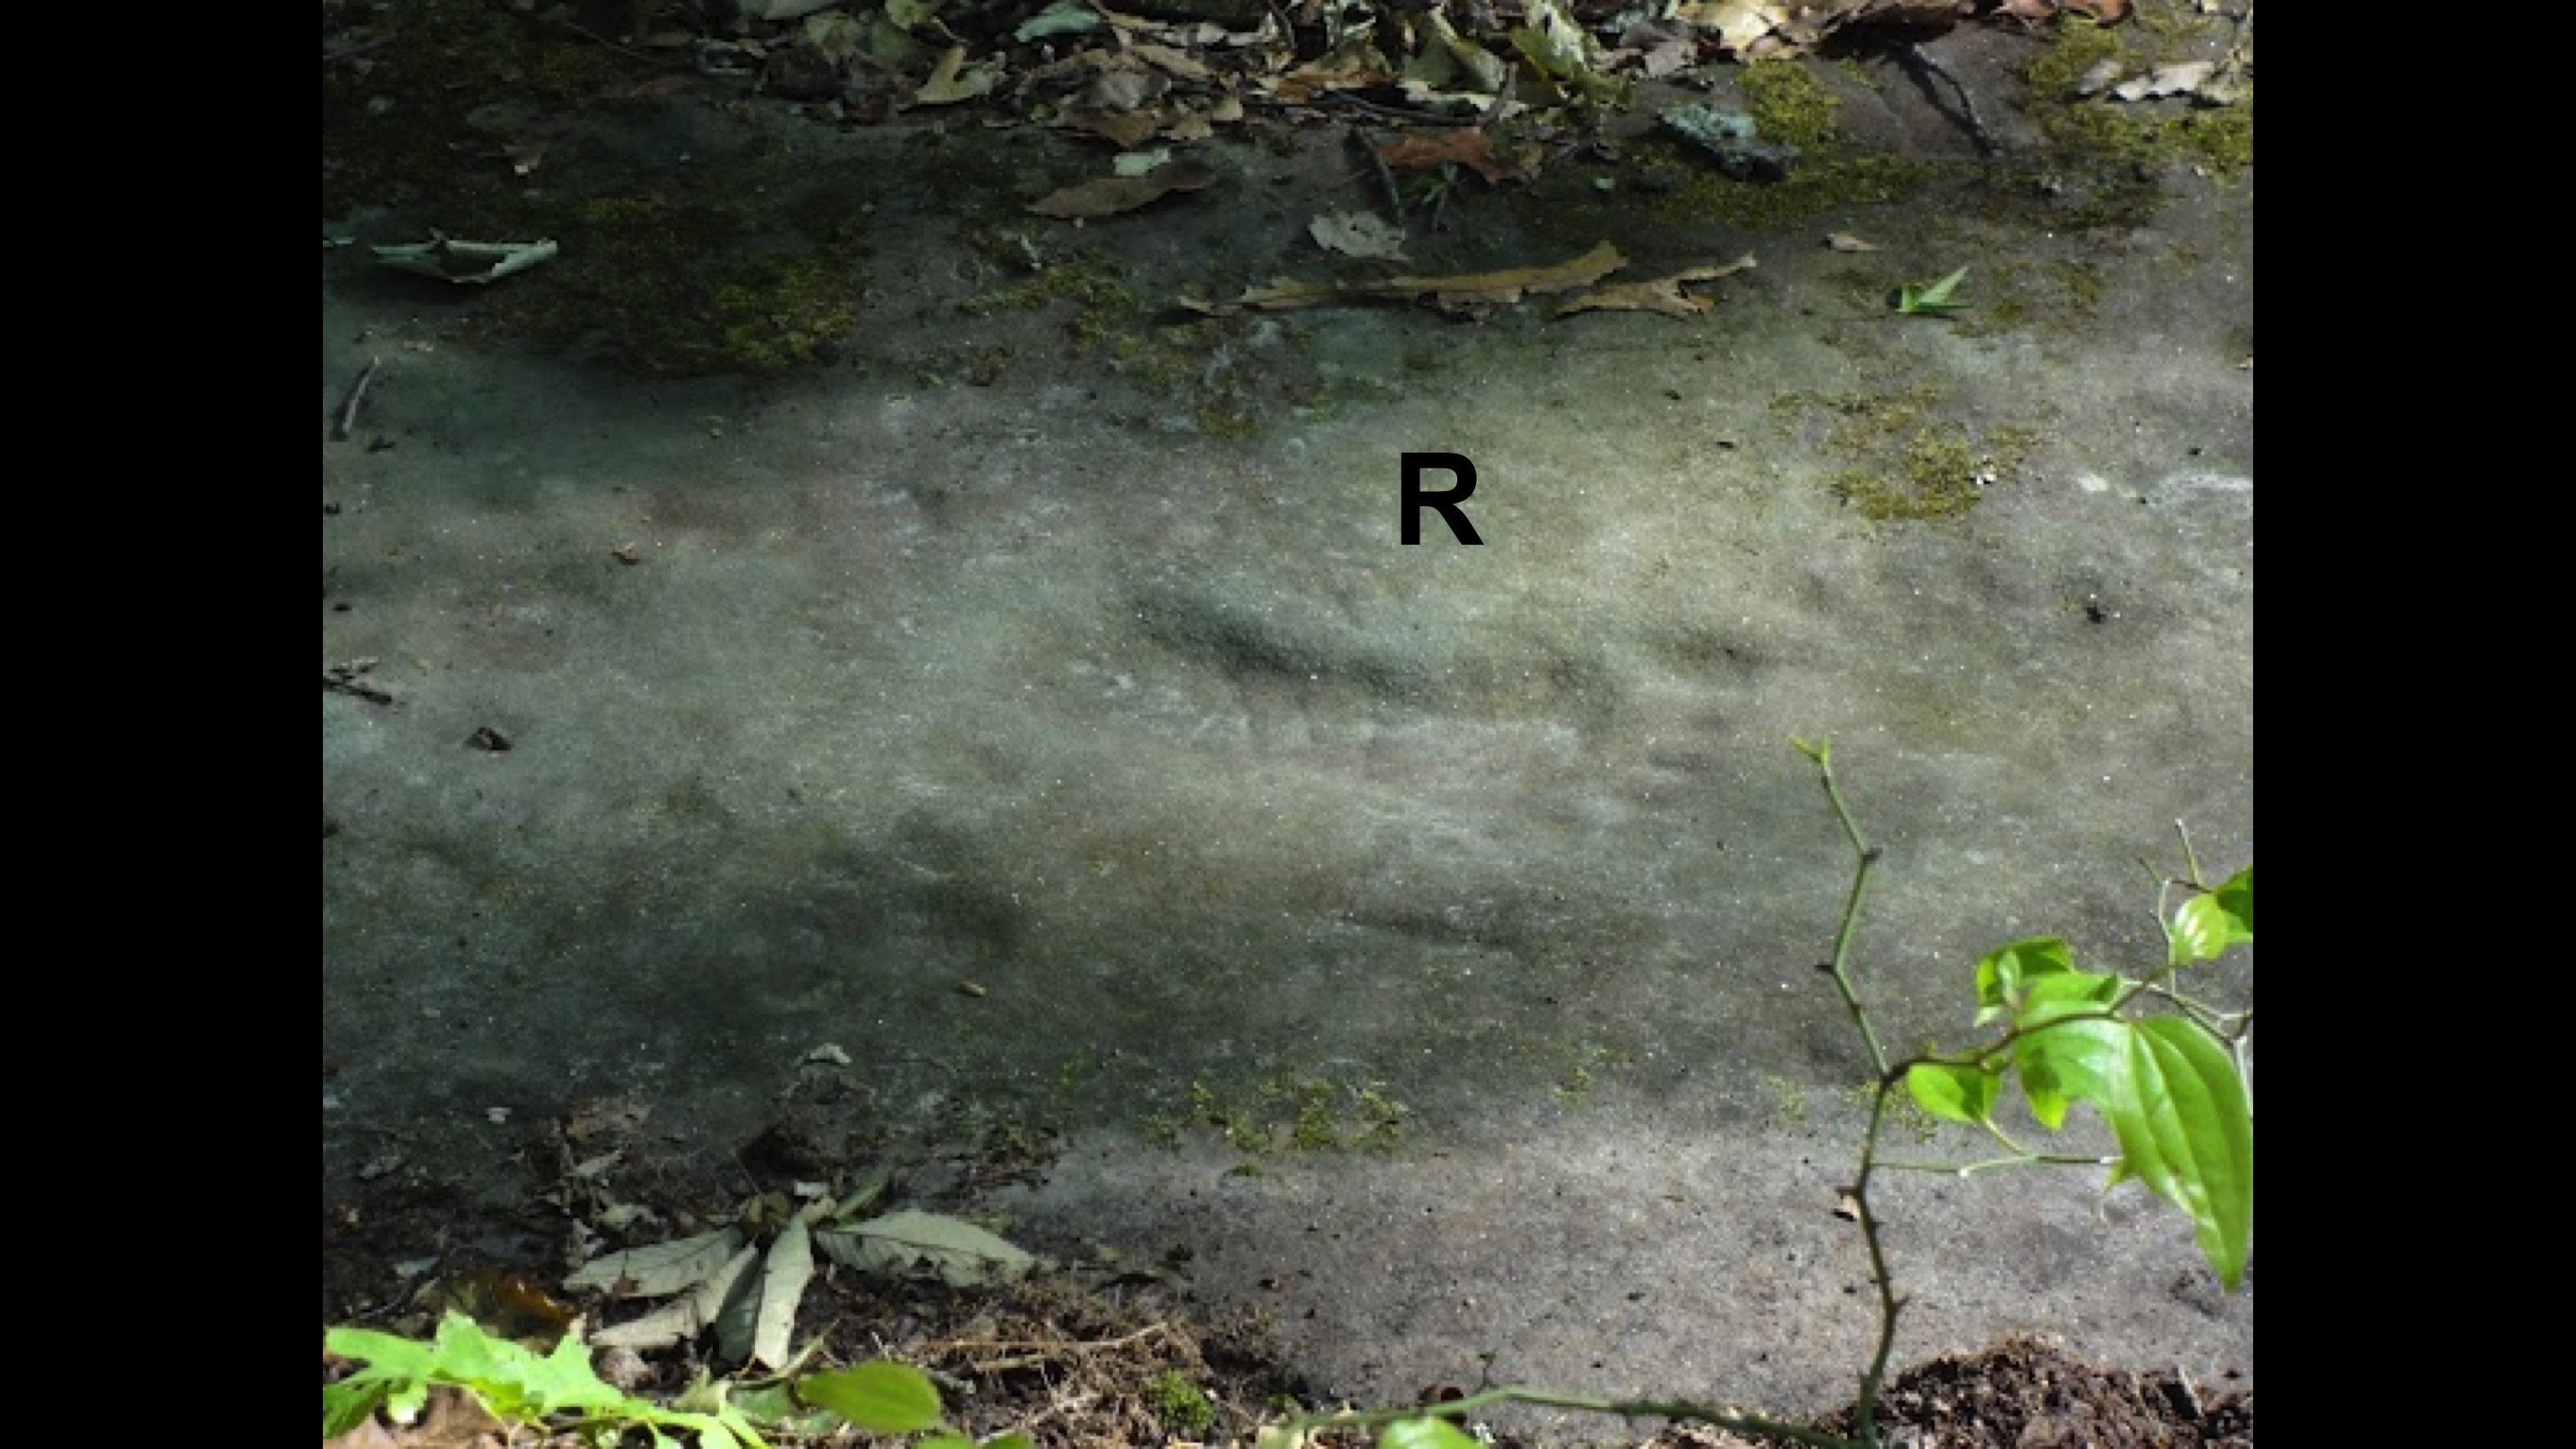 RSR's photos of human prints in Pennsylvanian sandstone in McKee, KY